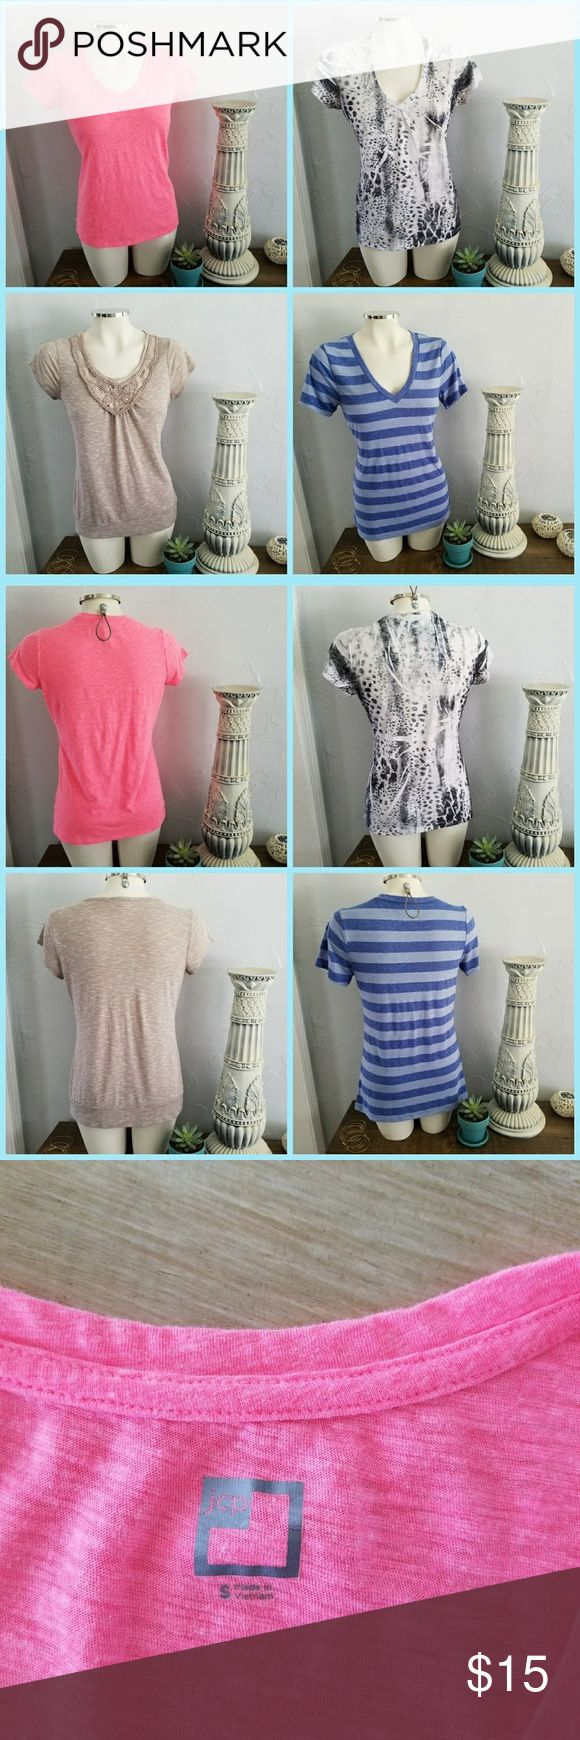 ❣Lot of 4 cute tees! No stains or rips! Regardless of tags, all shirts fit medium to large torsos. Tees from left to right are:  1. Solid pink - JC Penny, size small (runs medium); 2. Wrinkly animal print black & white - Maurices, size XL (runs large);  3. Sold grey with sequence collar - Maurices, size L (tag missing) 4. Blue stripes - Old Navy Vintage, size medium Tops Tees - Short Sleeve